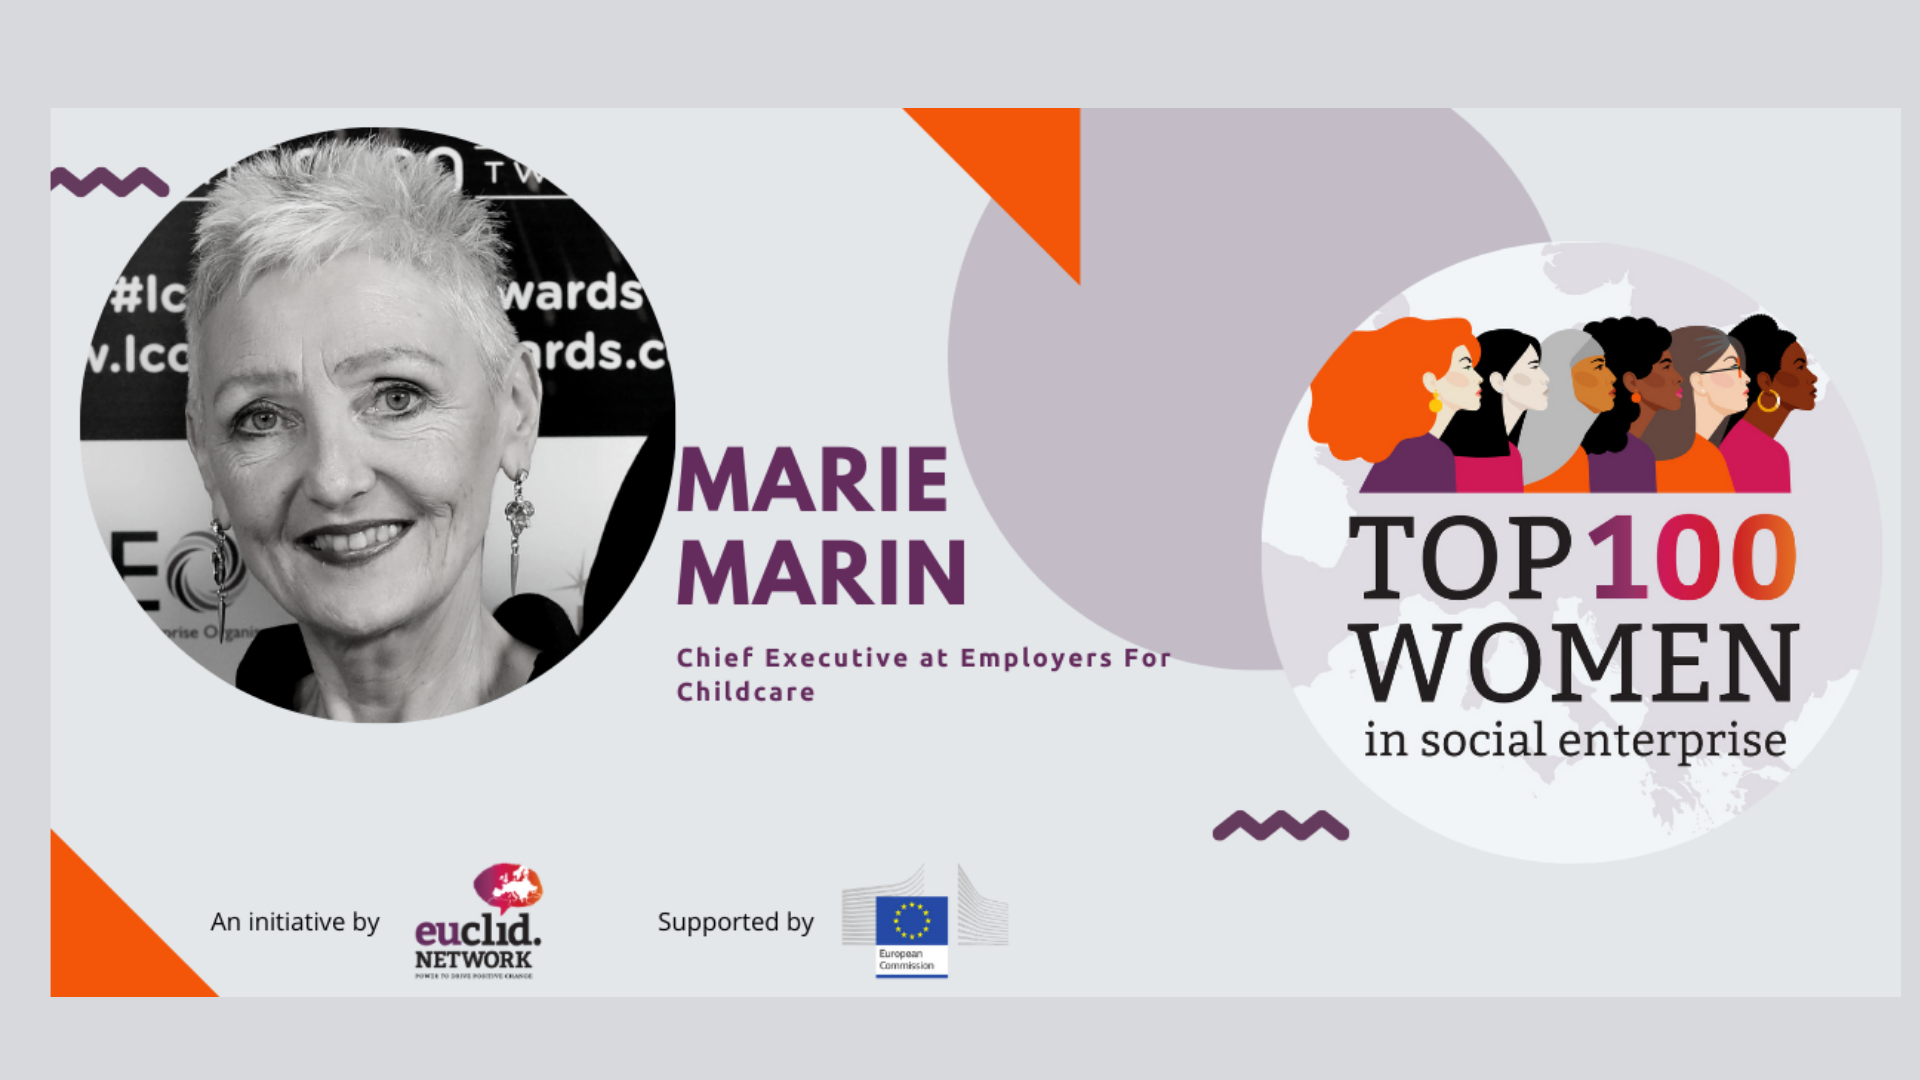 Employers For Childcare Chief Executive Marie Marin recognised at European level